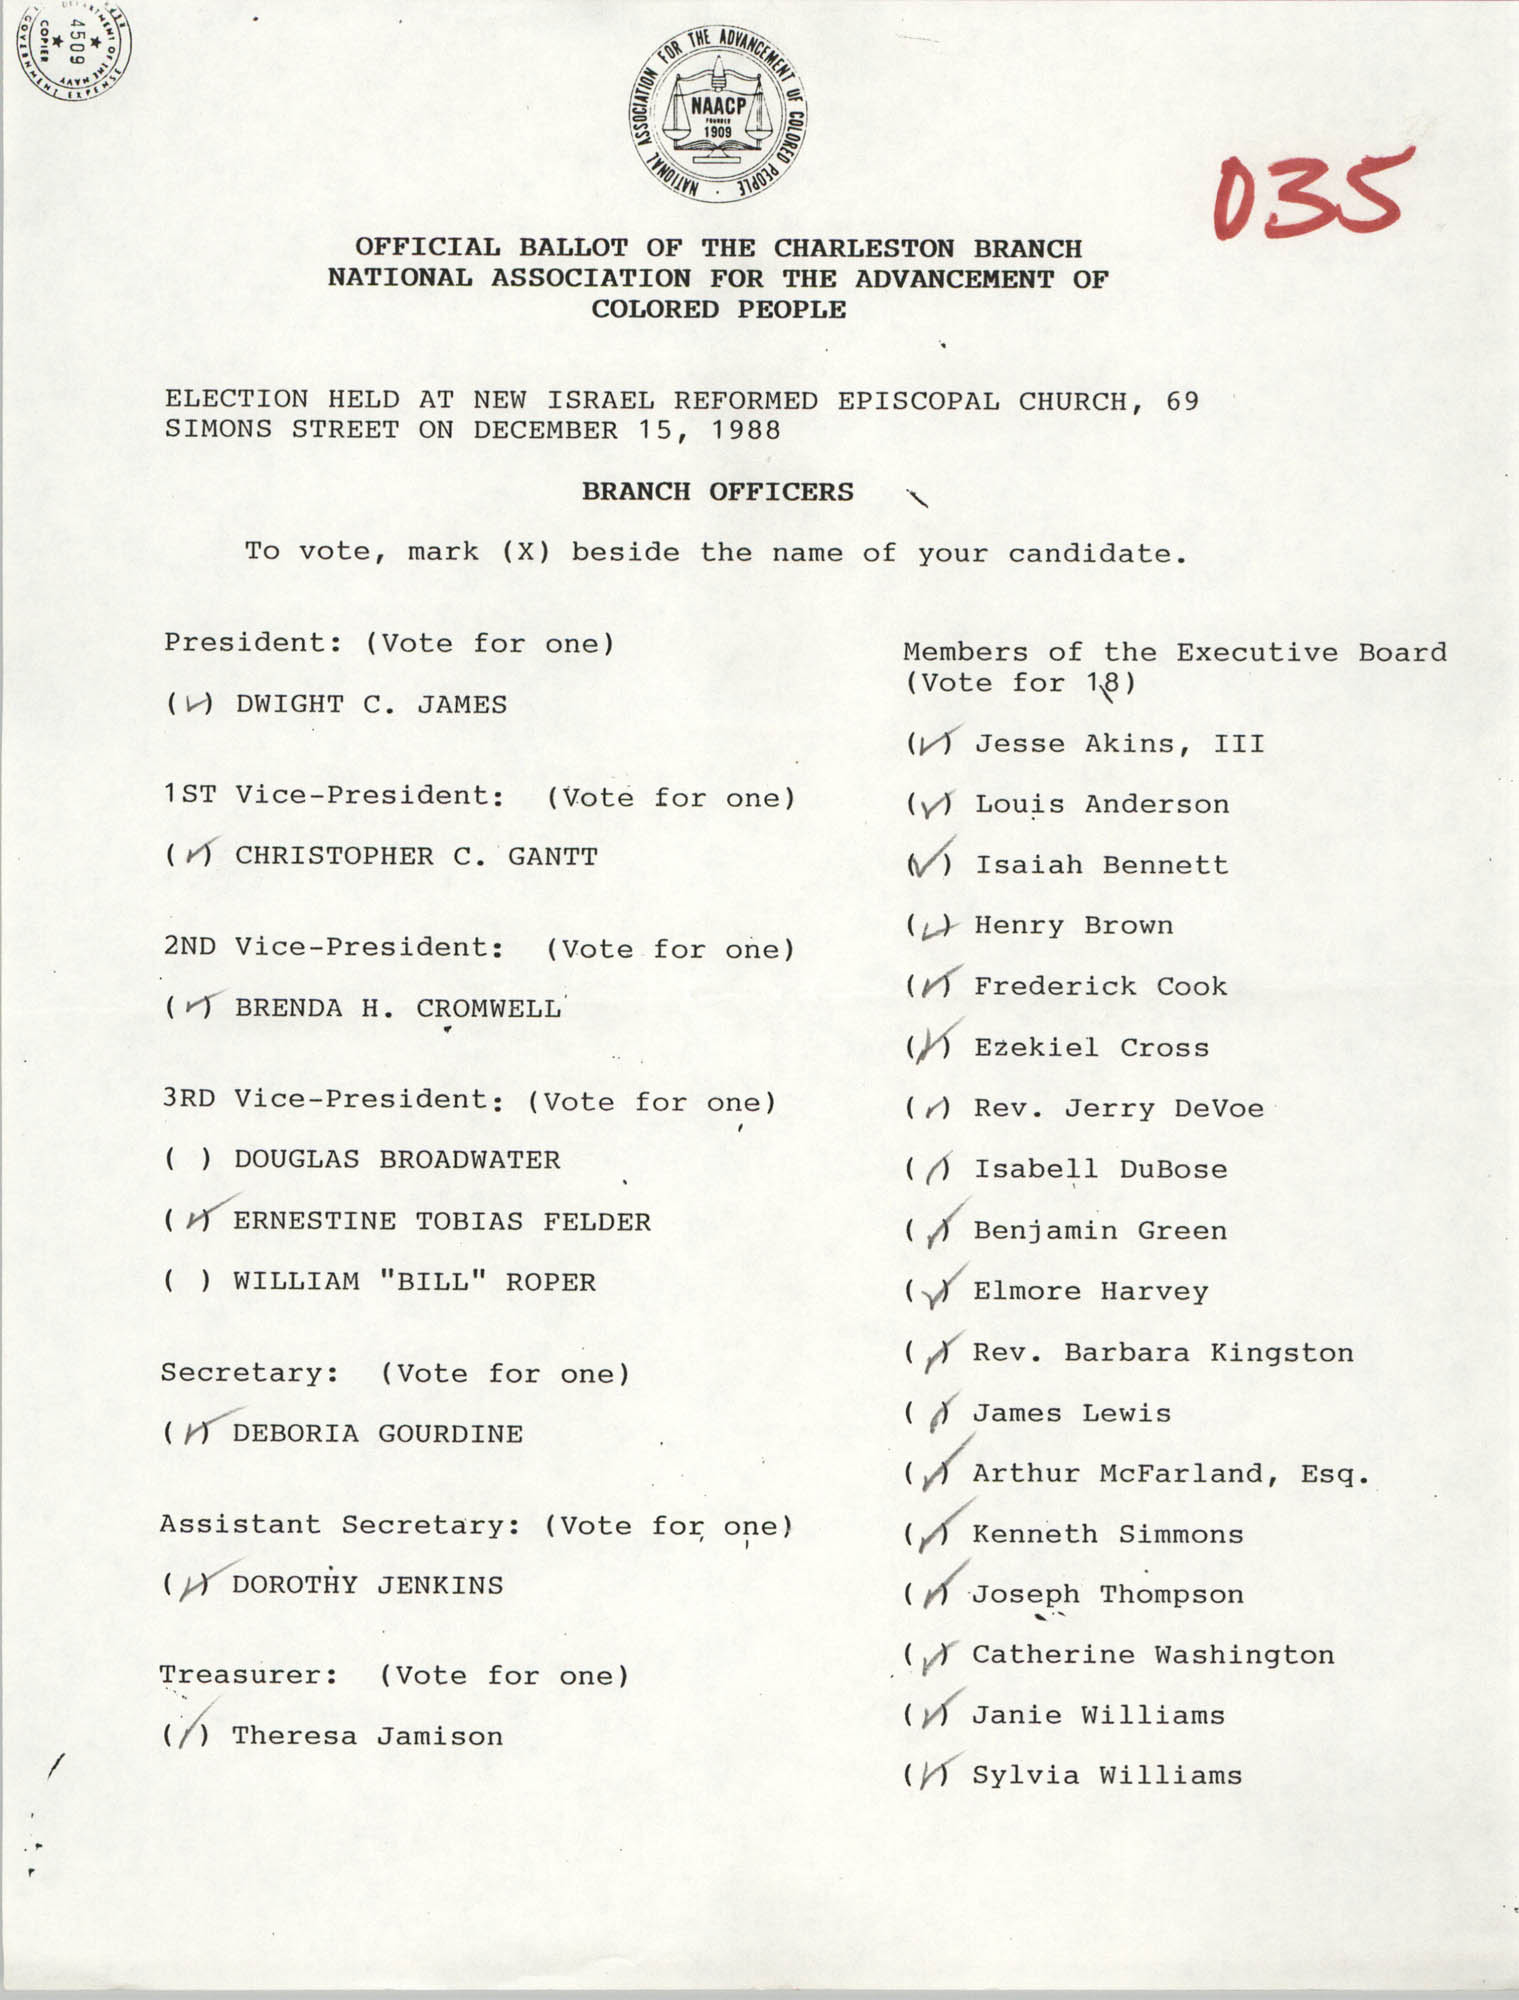 Official Ballot of the Charleston Branch of the NAACP, 035